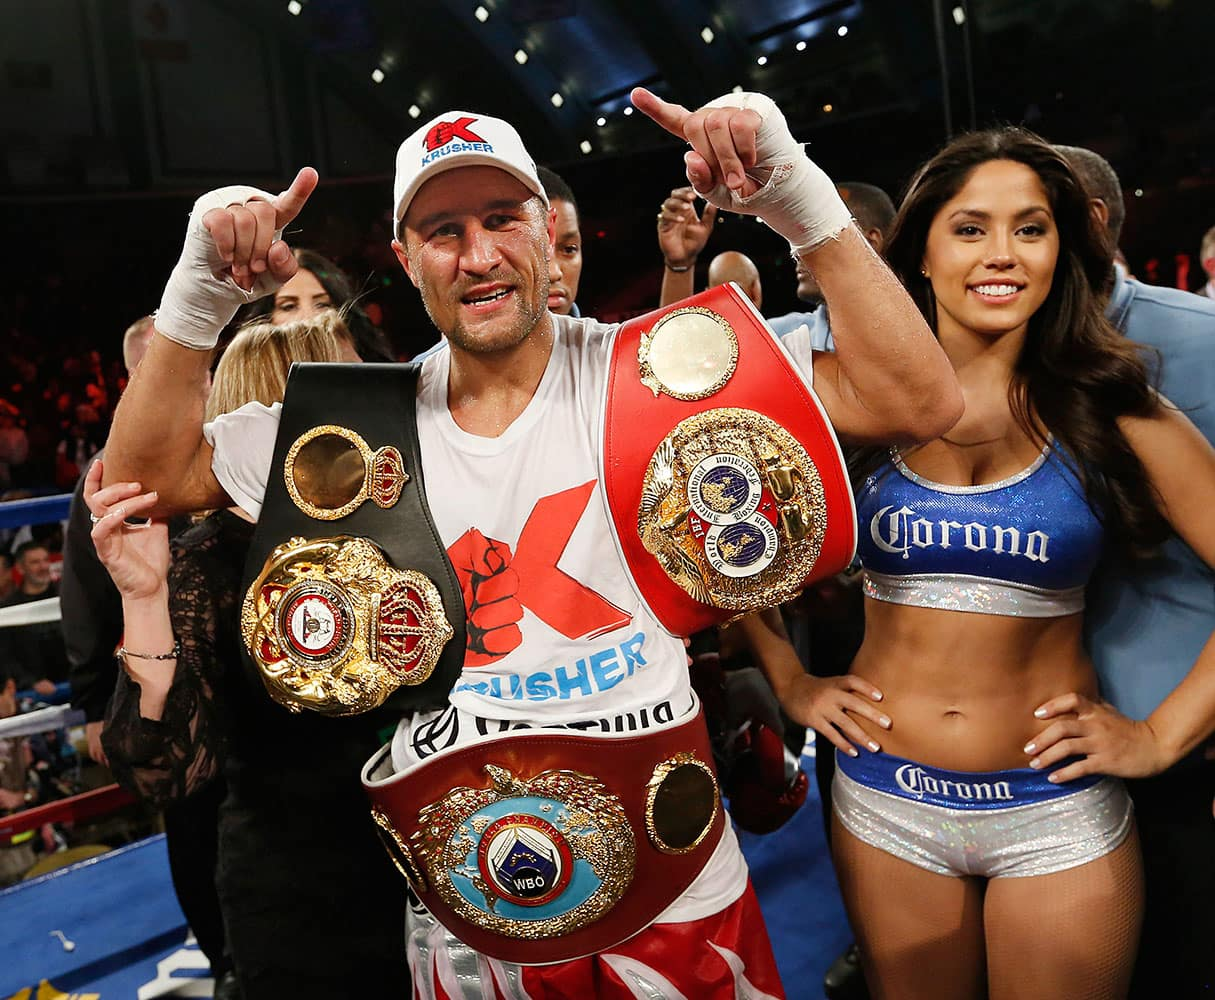 Sergey Kovalev of Russia poses with the belts after beating Bernard Hopkins of Philadelphia, PA in the 12th round of the Main Event IBF, WBA and WBO Light Heavyweight Titles boxing in Atlantic City, N.J.